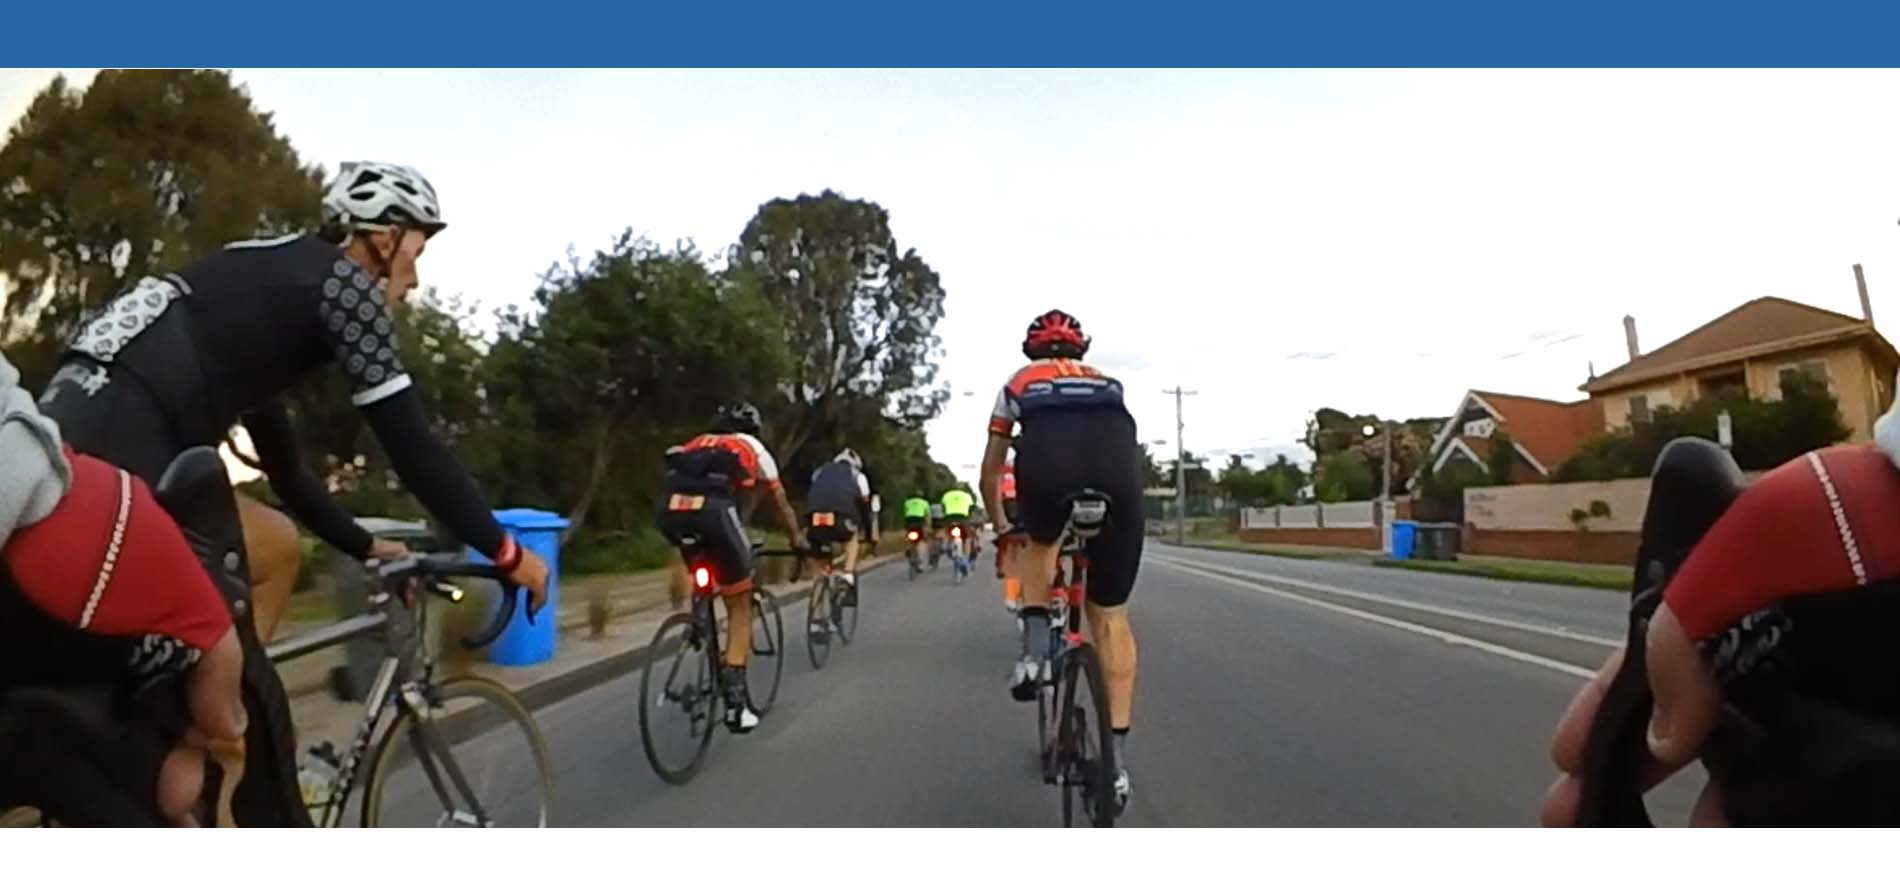 Why we ride 2 abreast